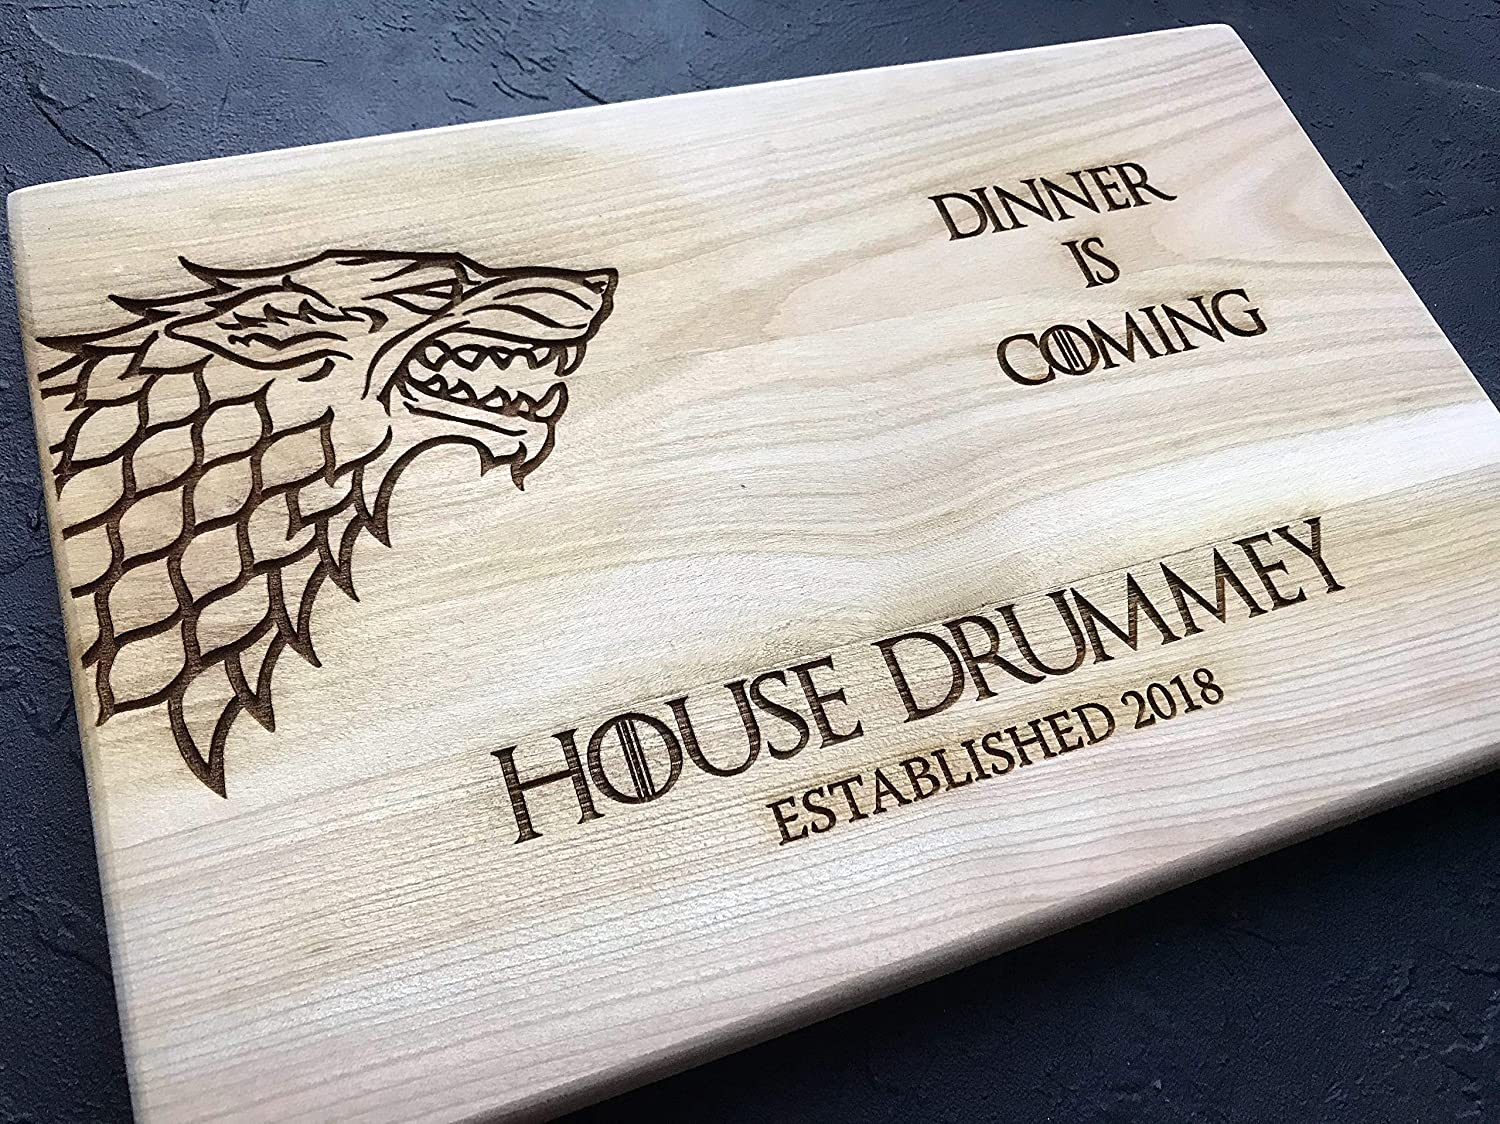 Personalized Cutting Board Dinner is coming Game of thrones House Stark Direwolf Engraved Custom Family chopping Wedding Gift Anniversary Housewarming Birthday Christmas game01